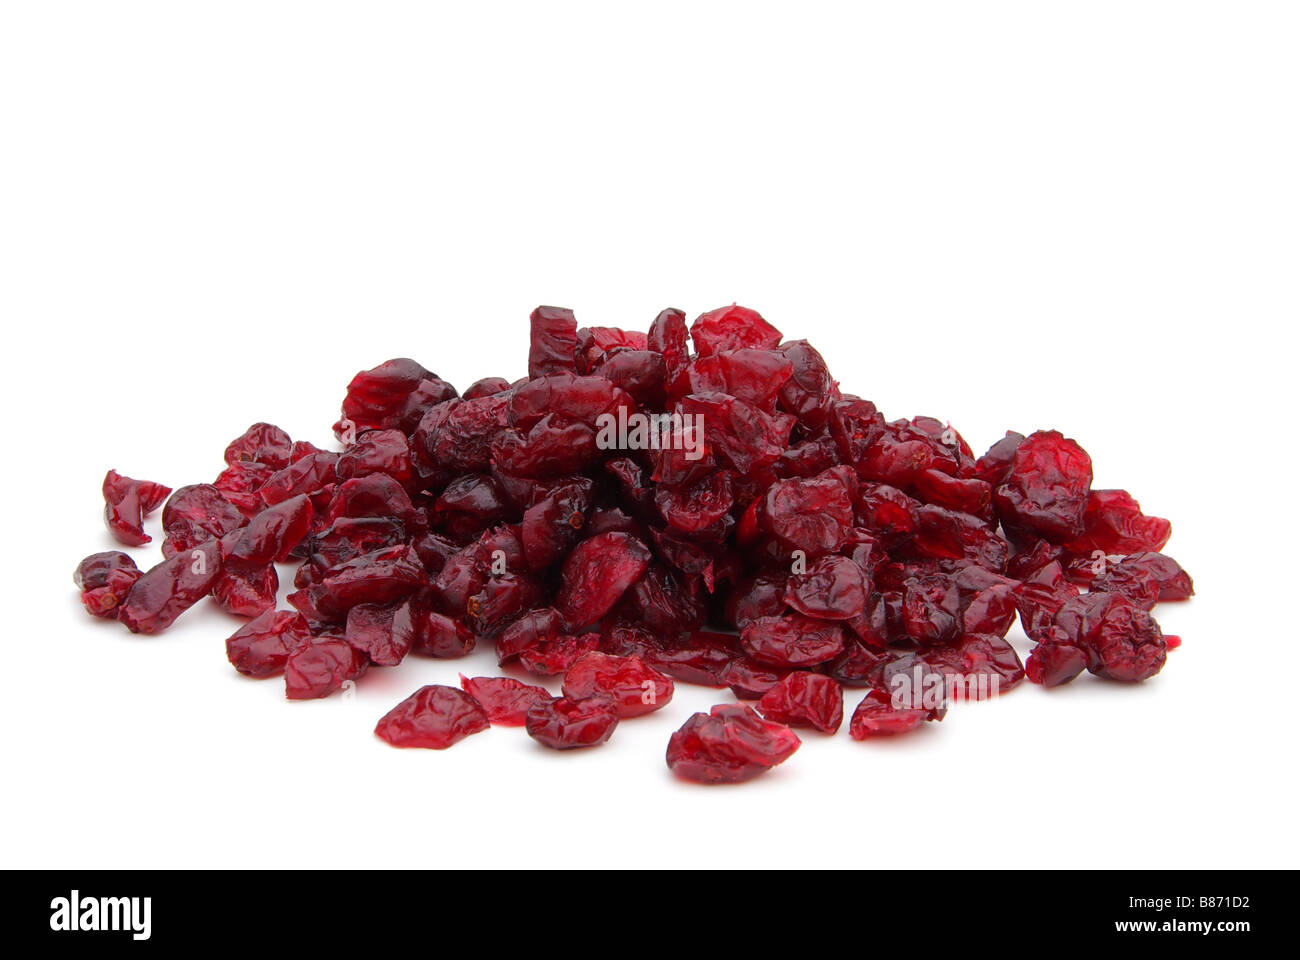 Cranberry 02 - Stock Image